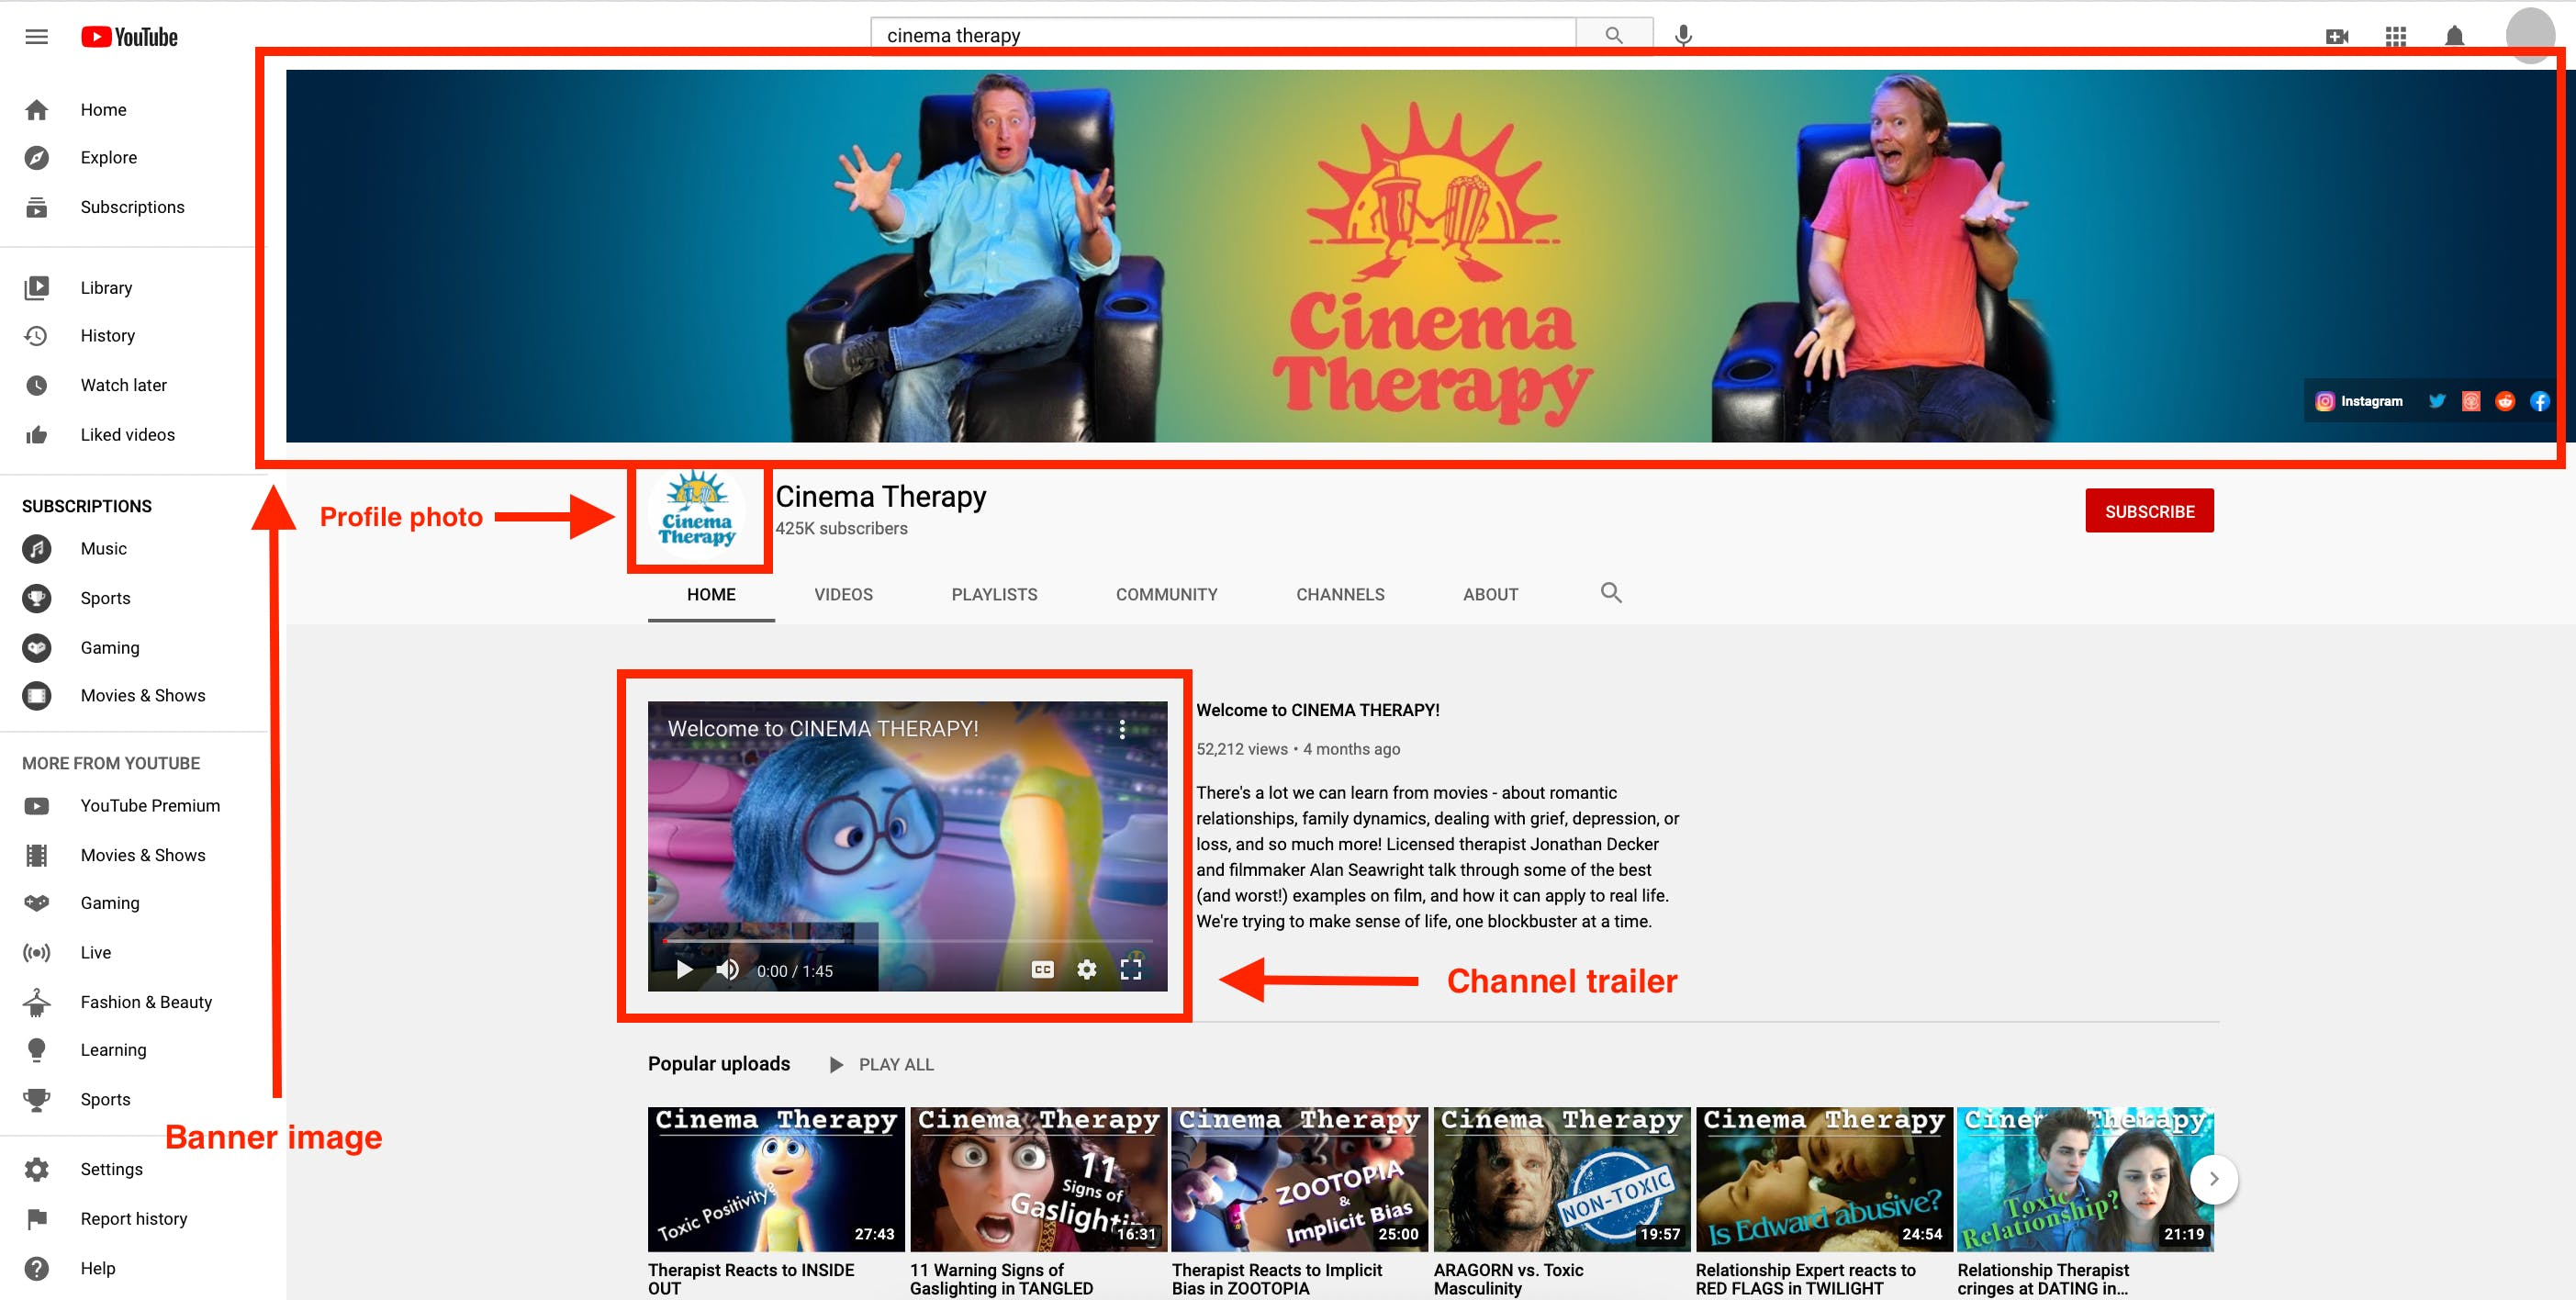 Example of a YouTube channel indicating locations for channel banner at the top, profile photo, and channel trailer